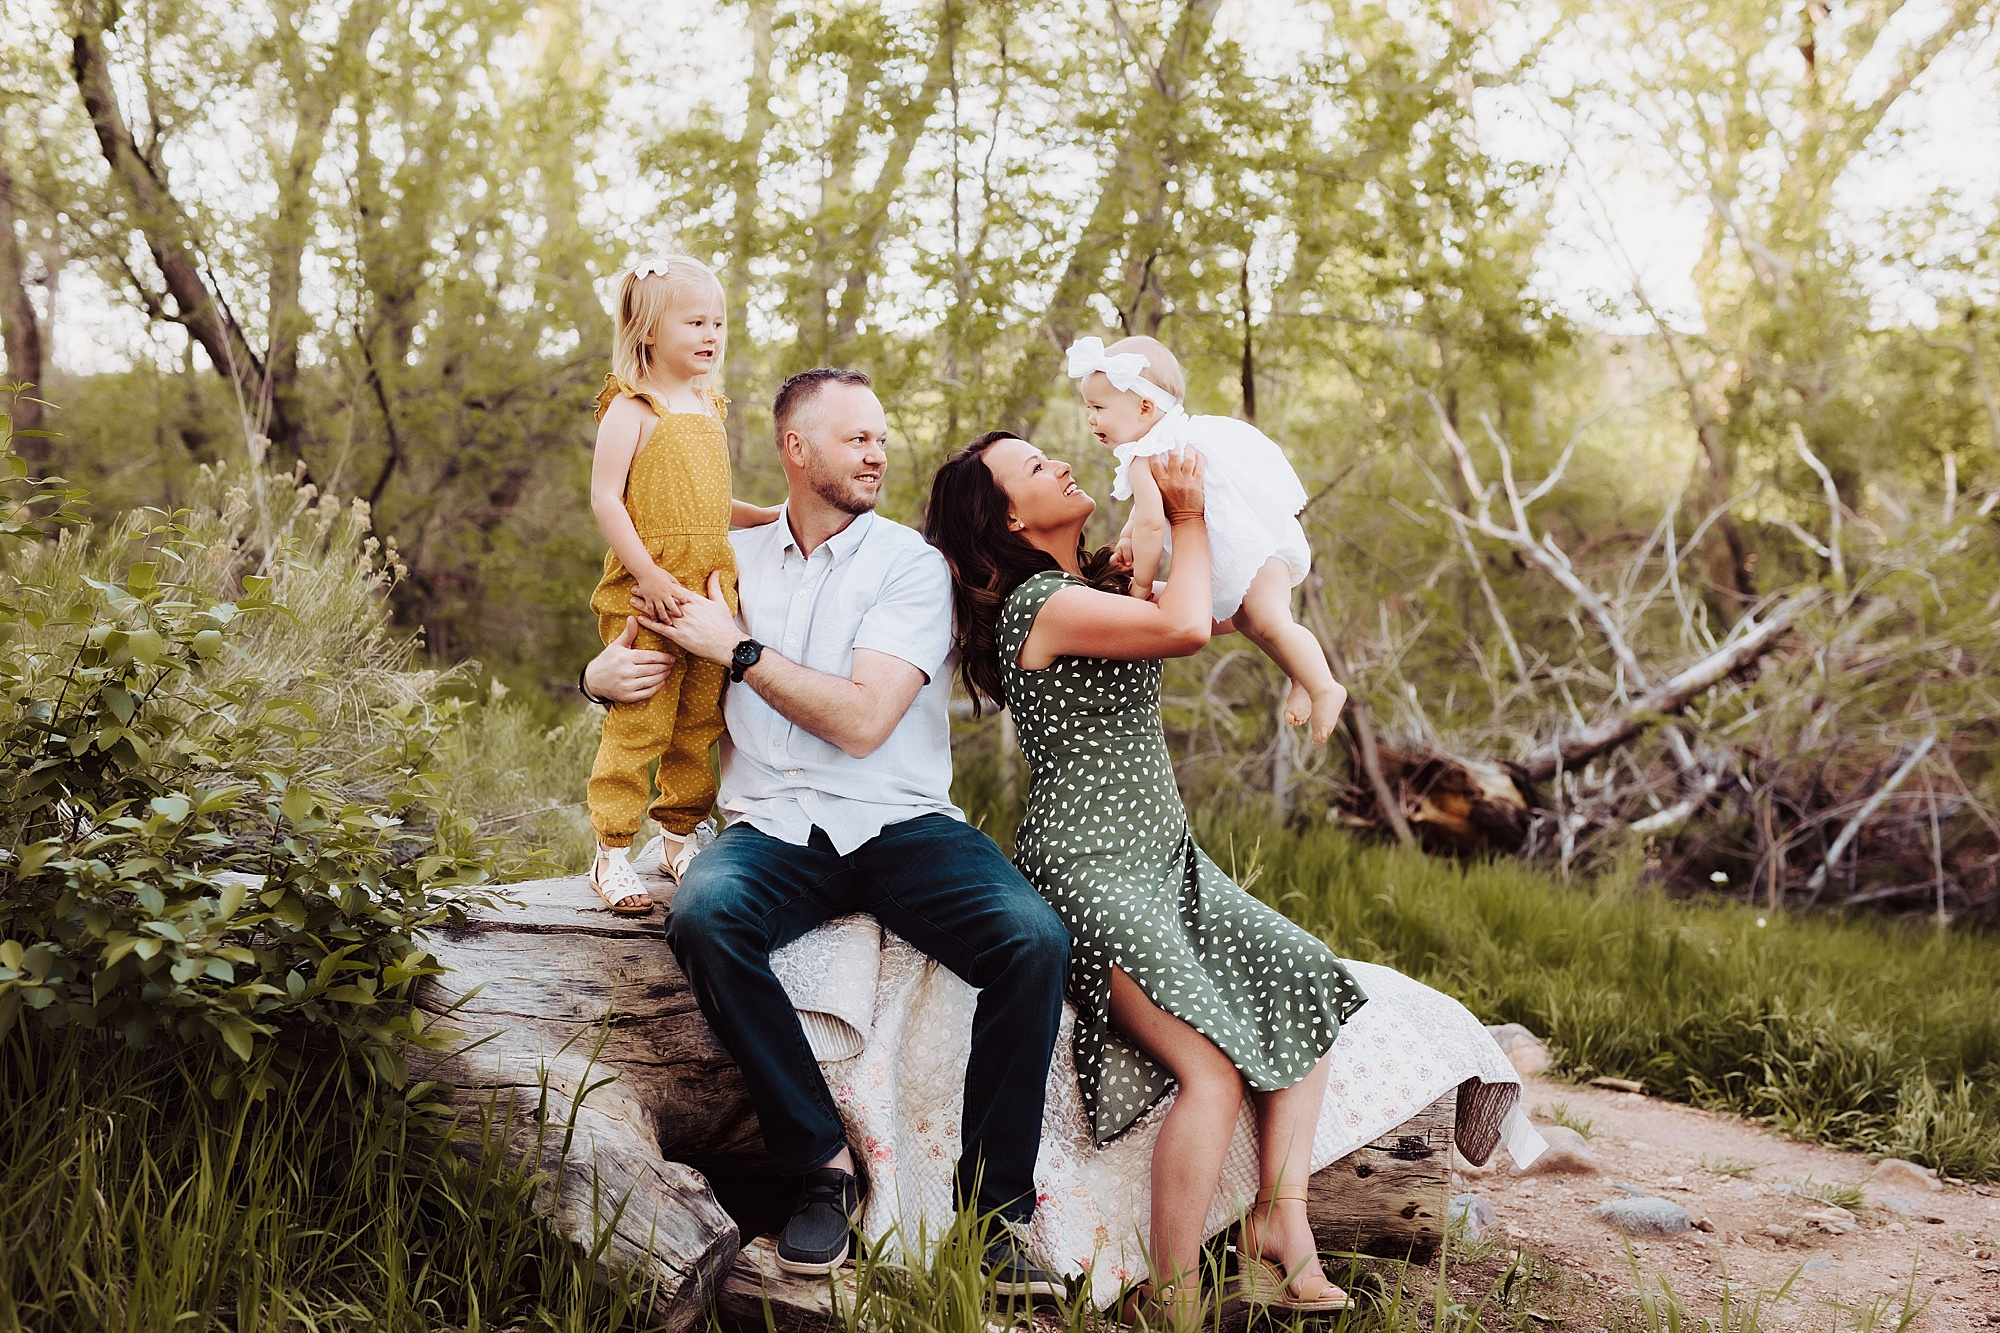 Outdoor Family Photos in Denver | www.julielivermorephotography.com